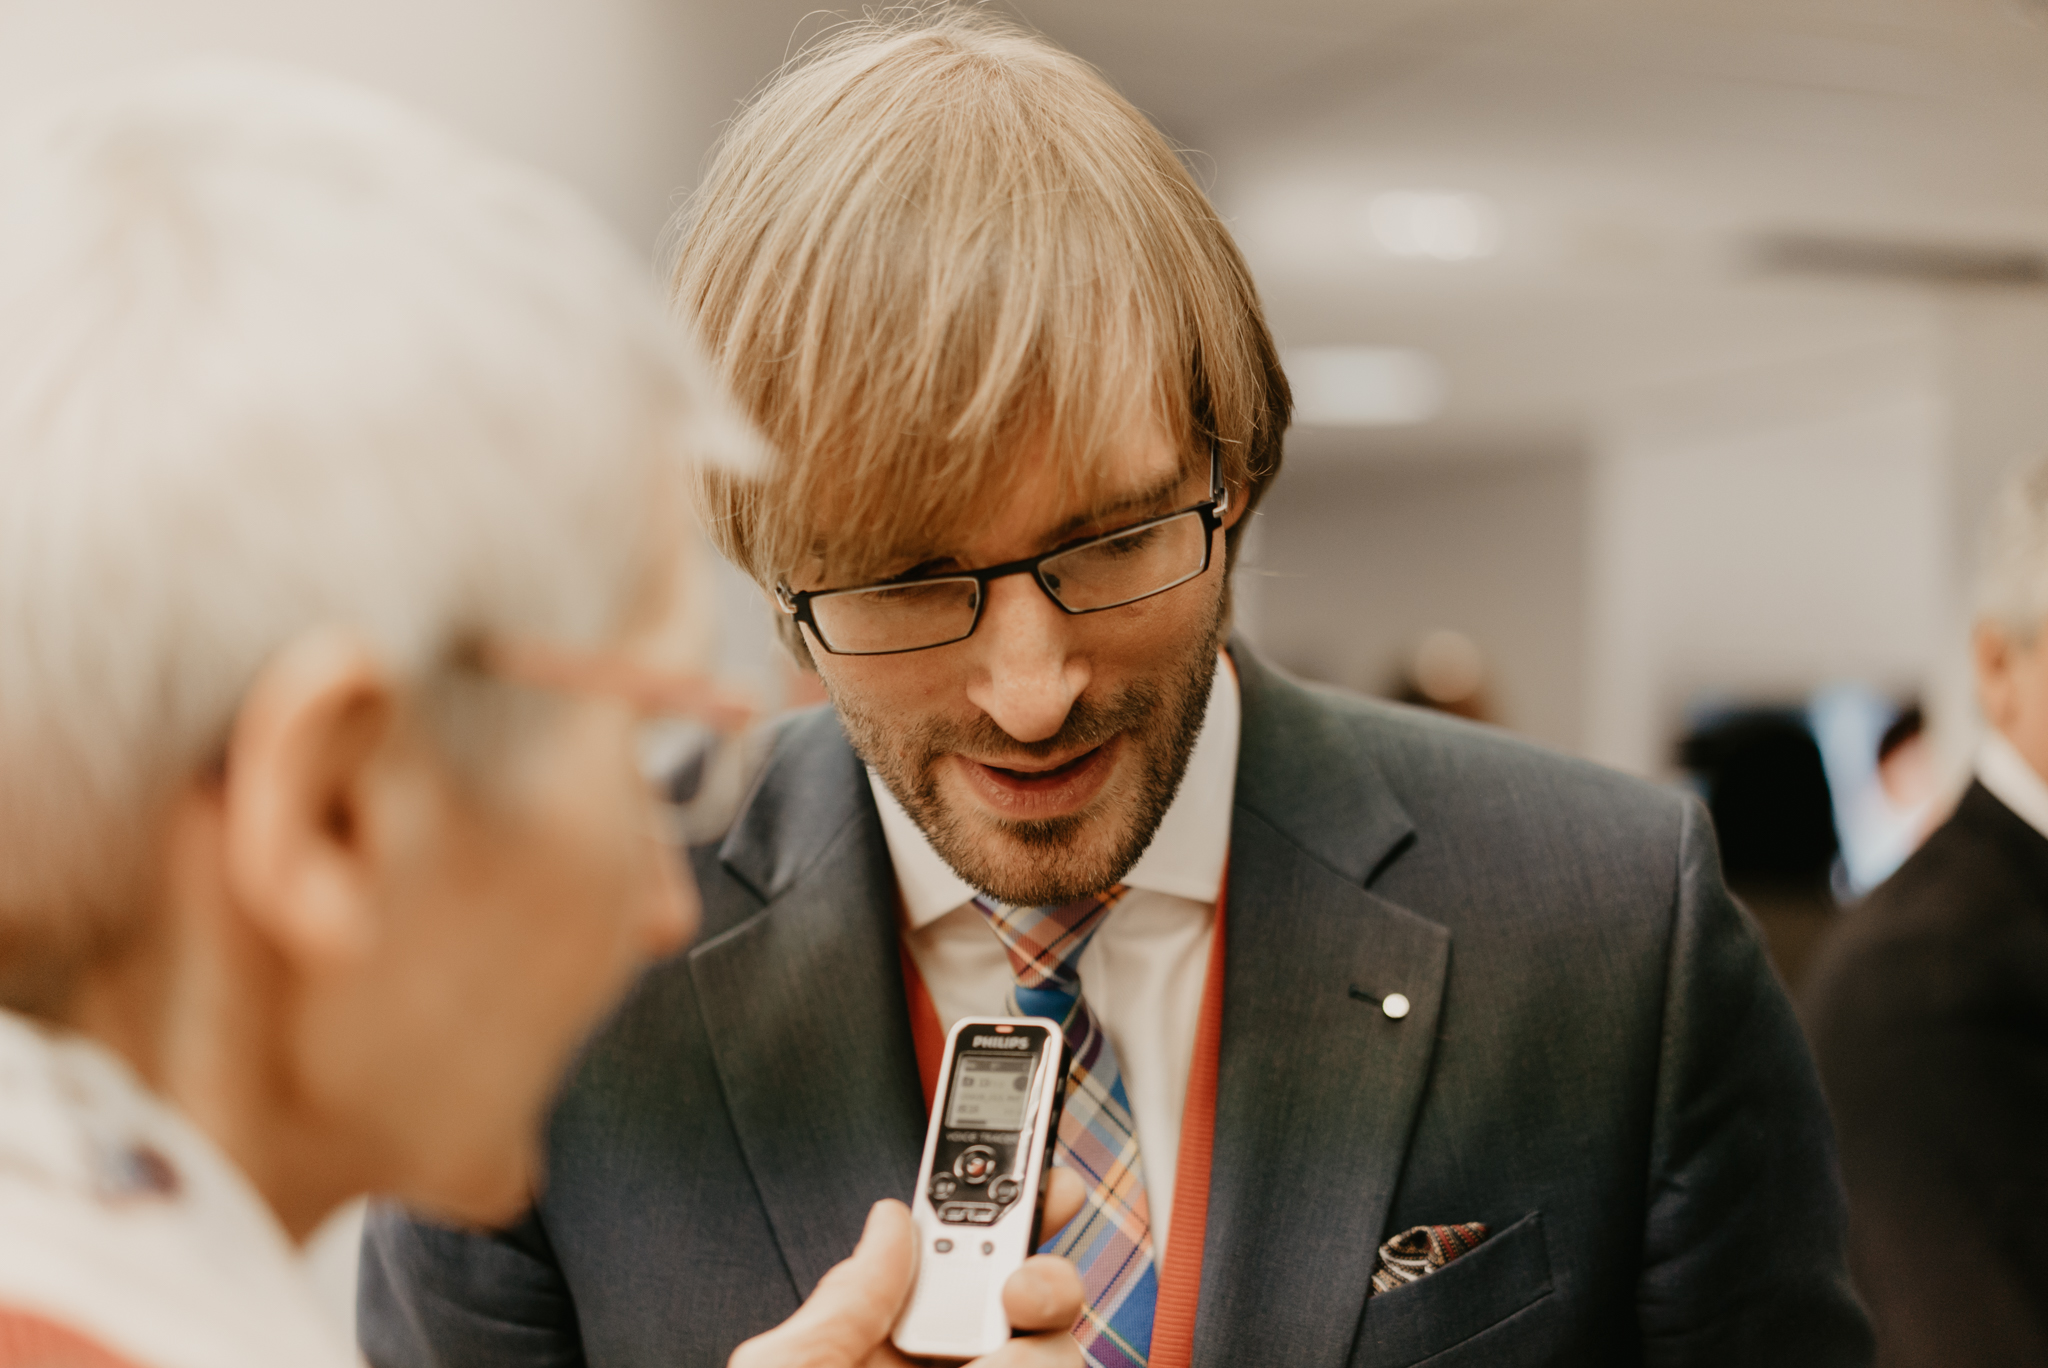 Mgr. et Mgr. Vojtěch, Trimed Job 2018 foto: Trimed Job